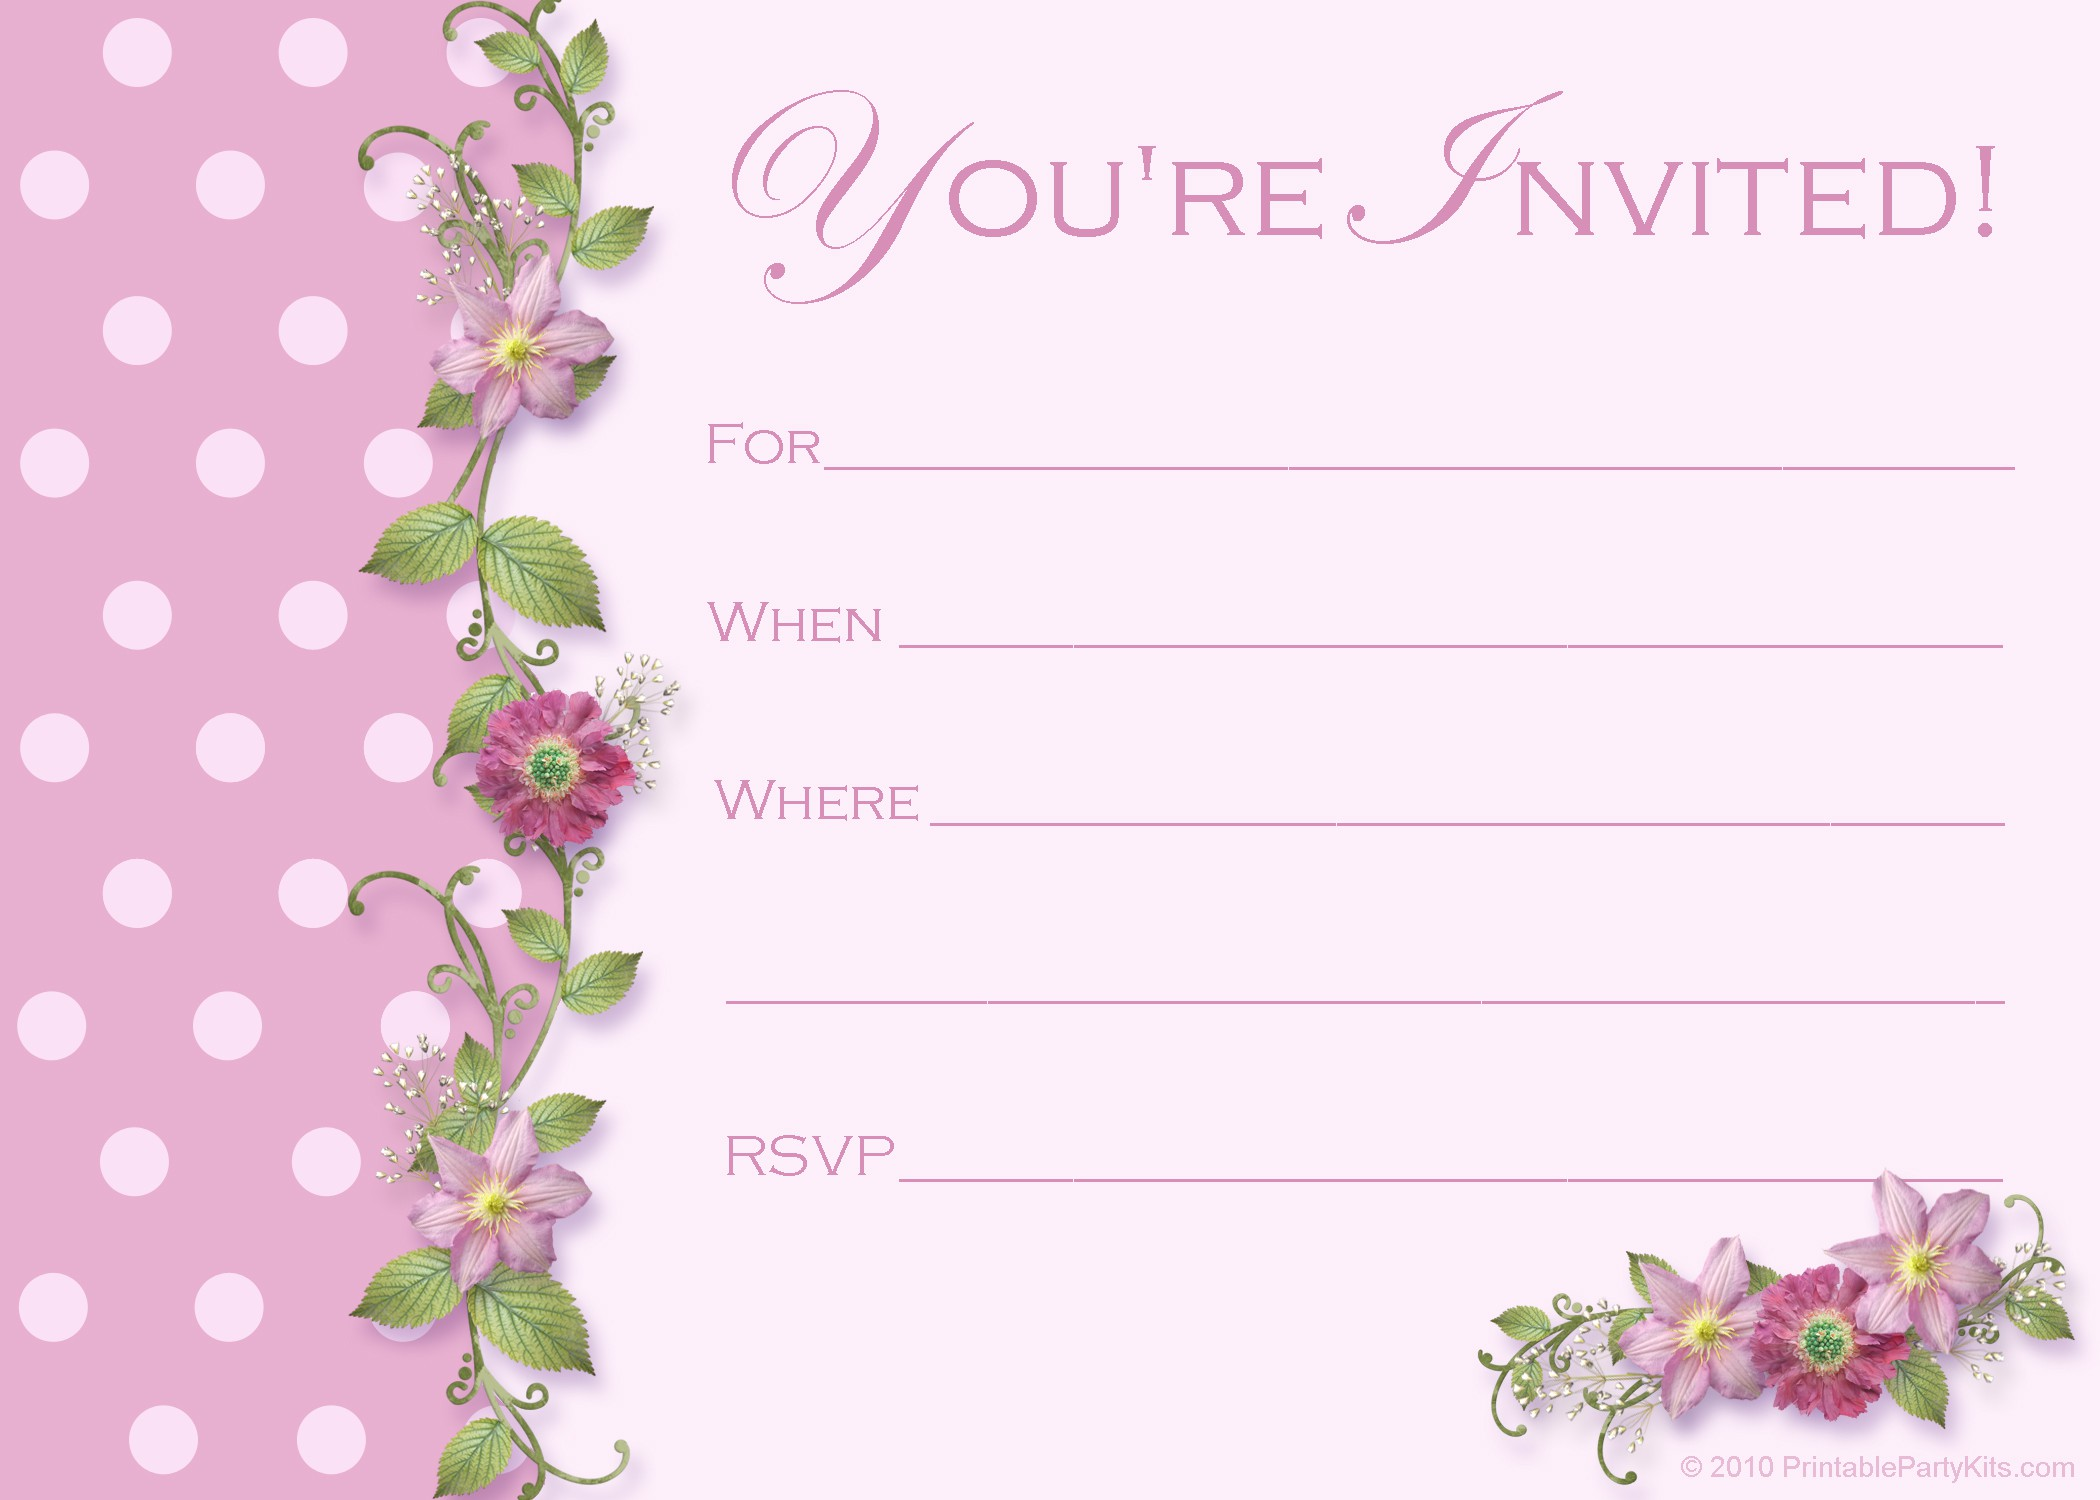 9 Best Images of Free Party Printable Templates - Birthday Party ... Birthday Party Invitation Template Free